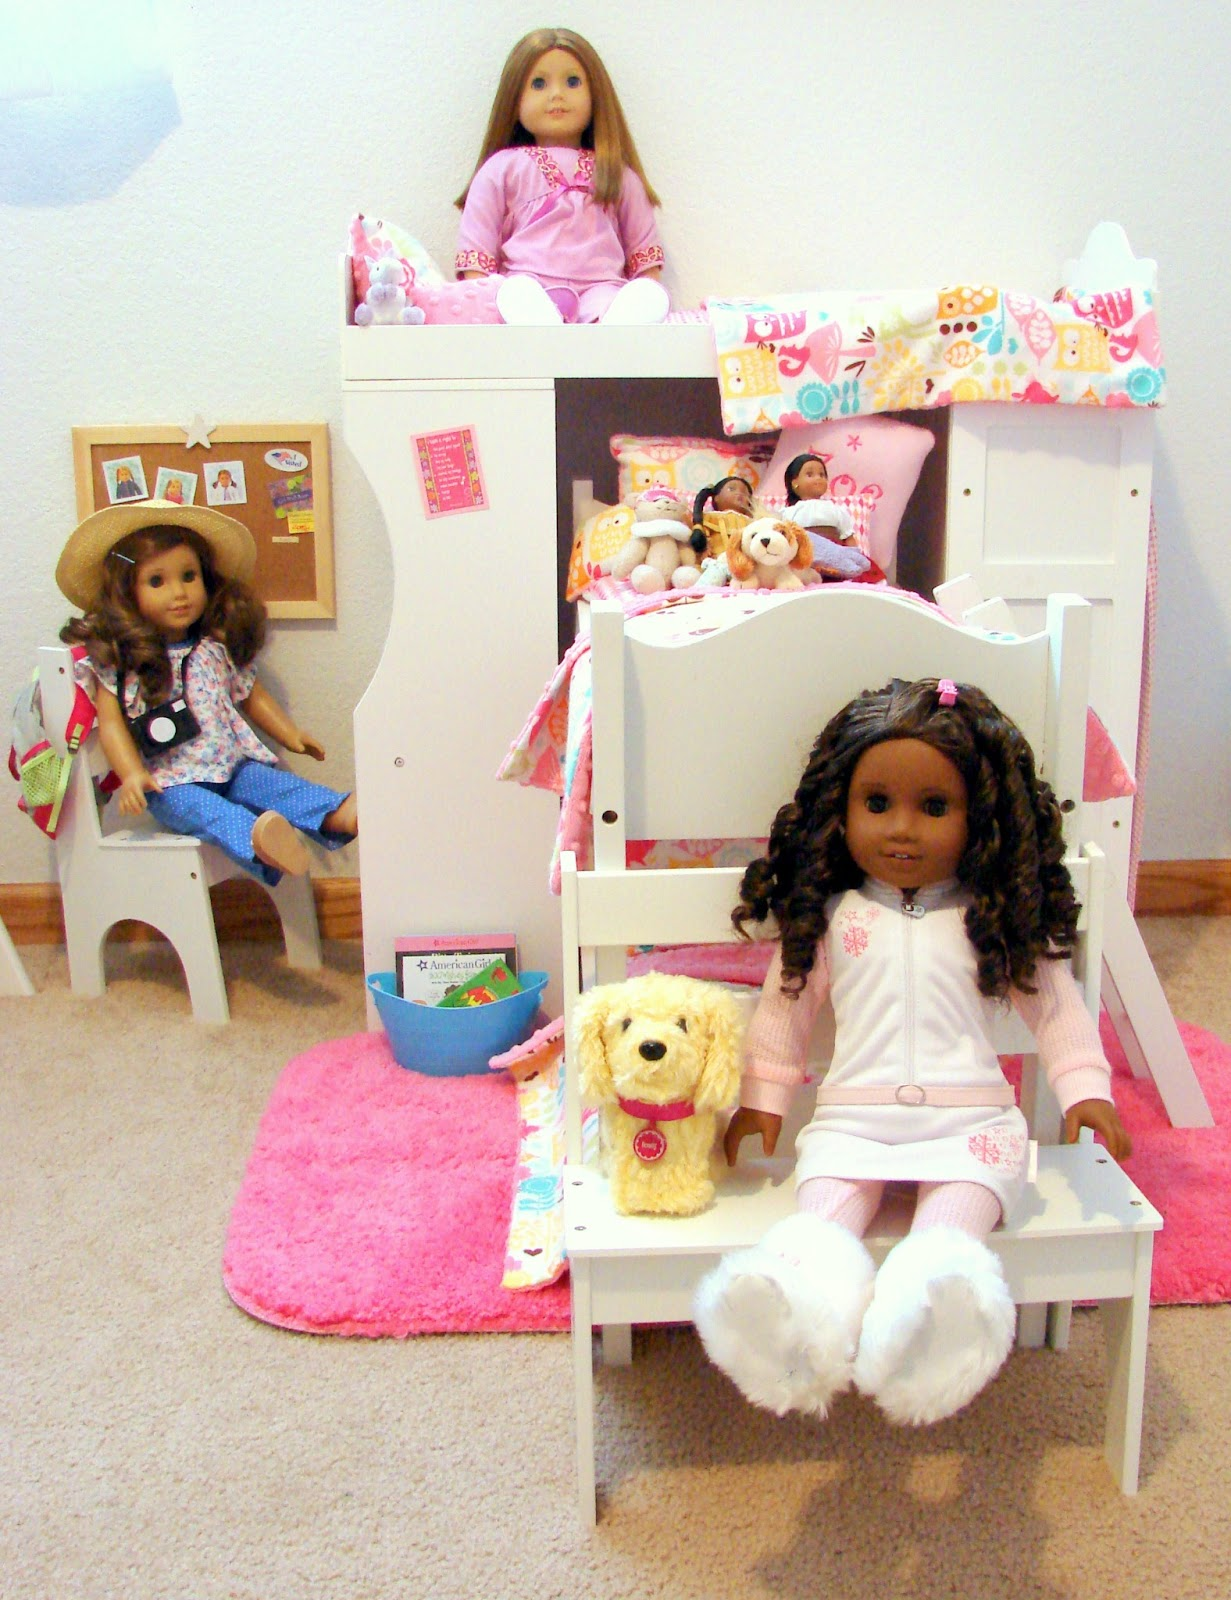 American Girl Doll Play: Our Doll Play Area - The Doll Bedroom